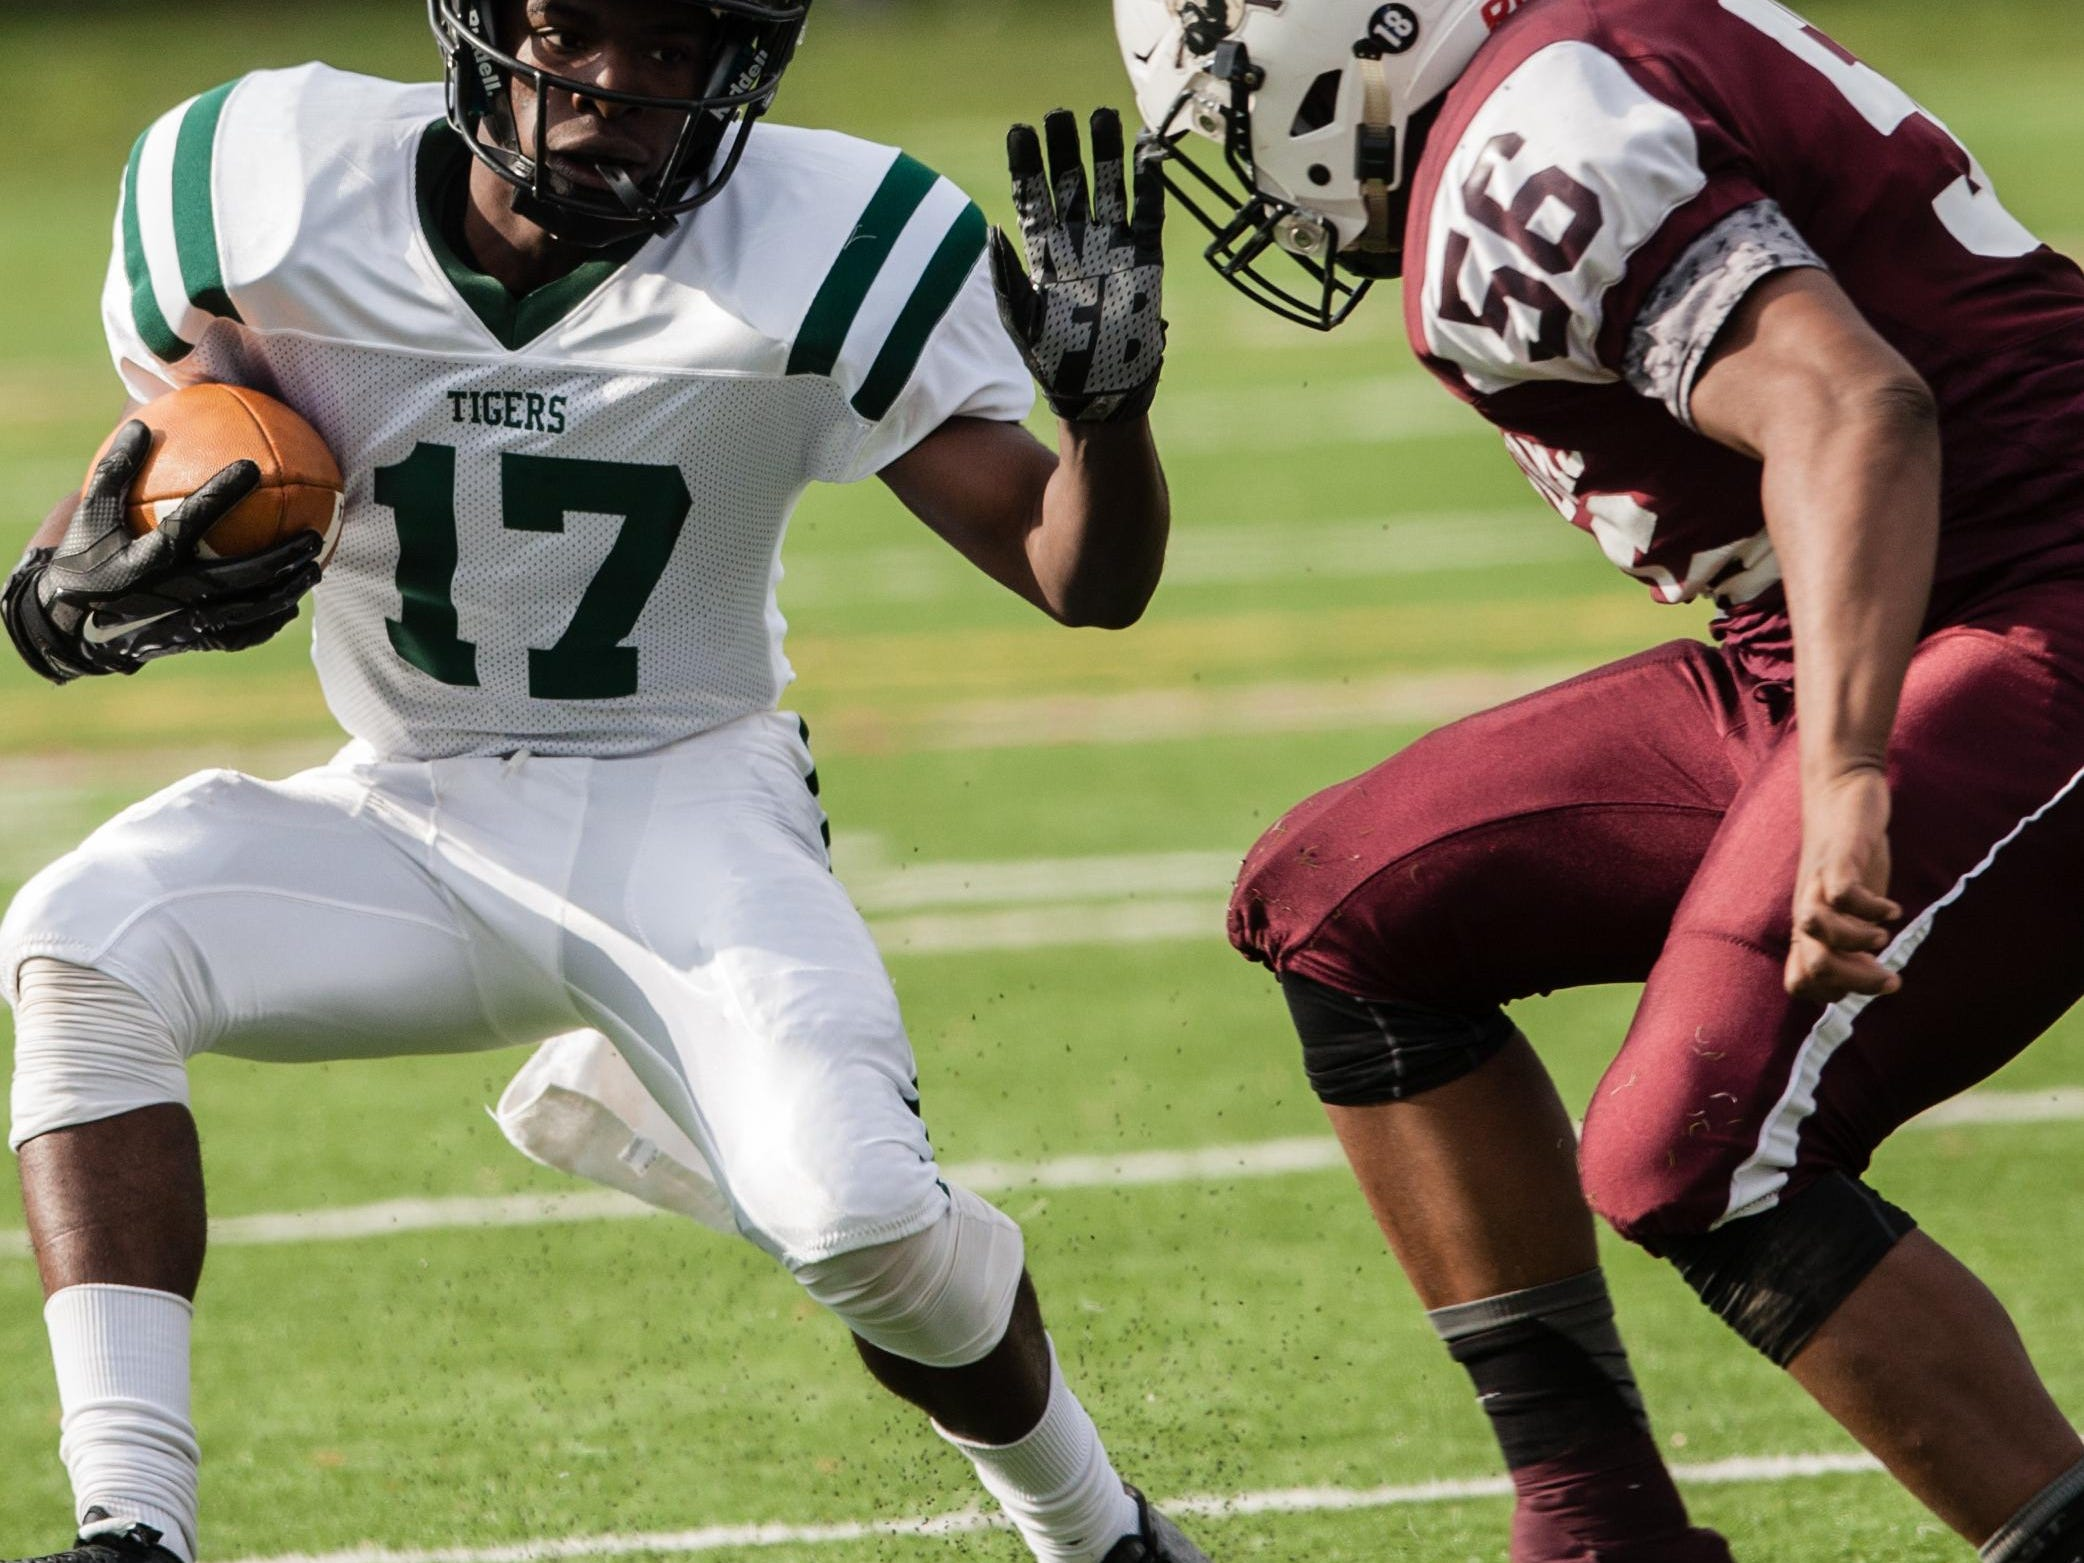 South Plainfield's Raeon Cohen (17) carries the ball as North Plainfield's Siraaj Price defends during Thursday's game.